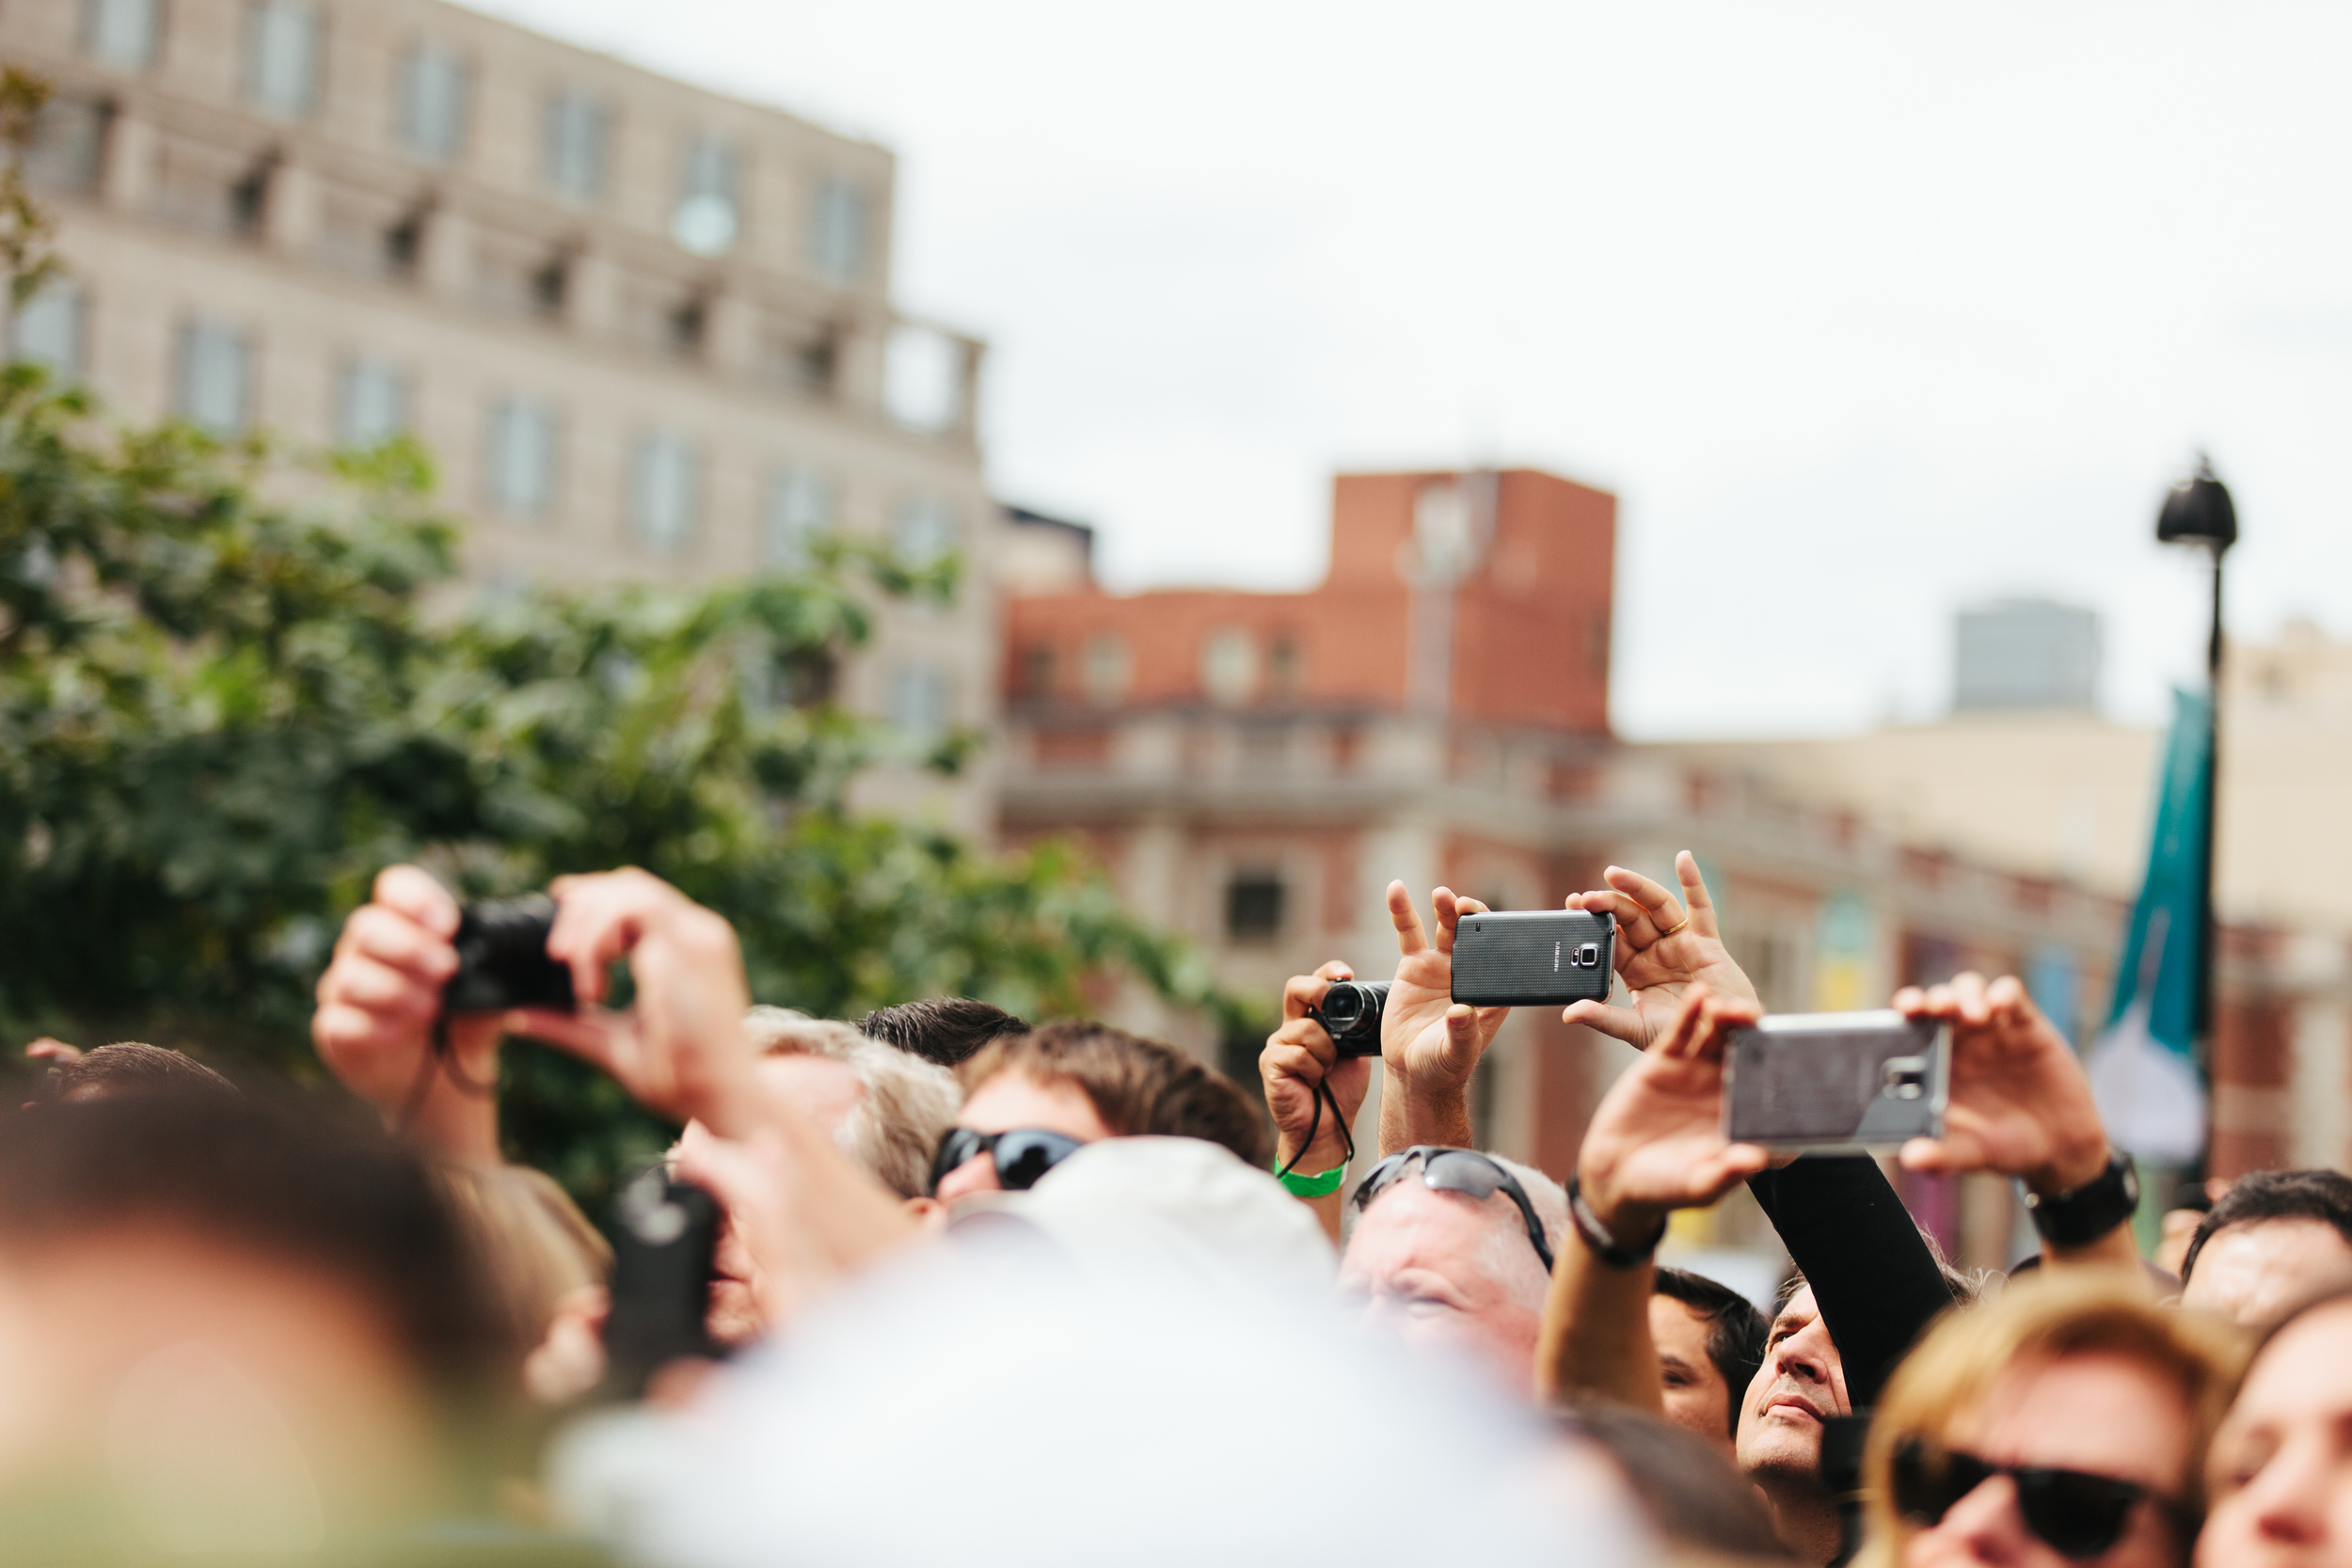 People's Phones Out Watching Pope Francis